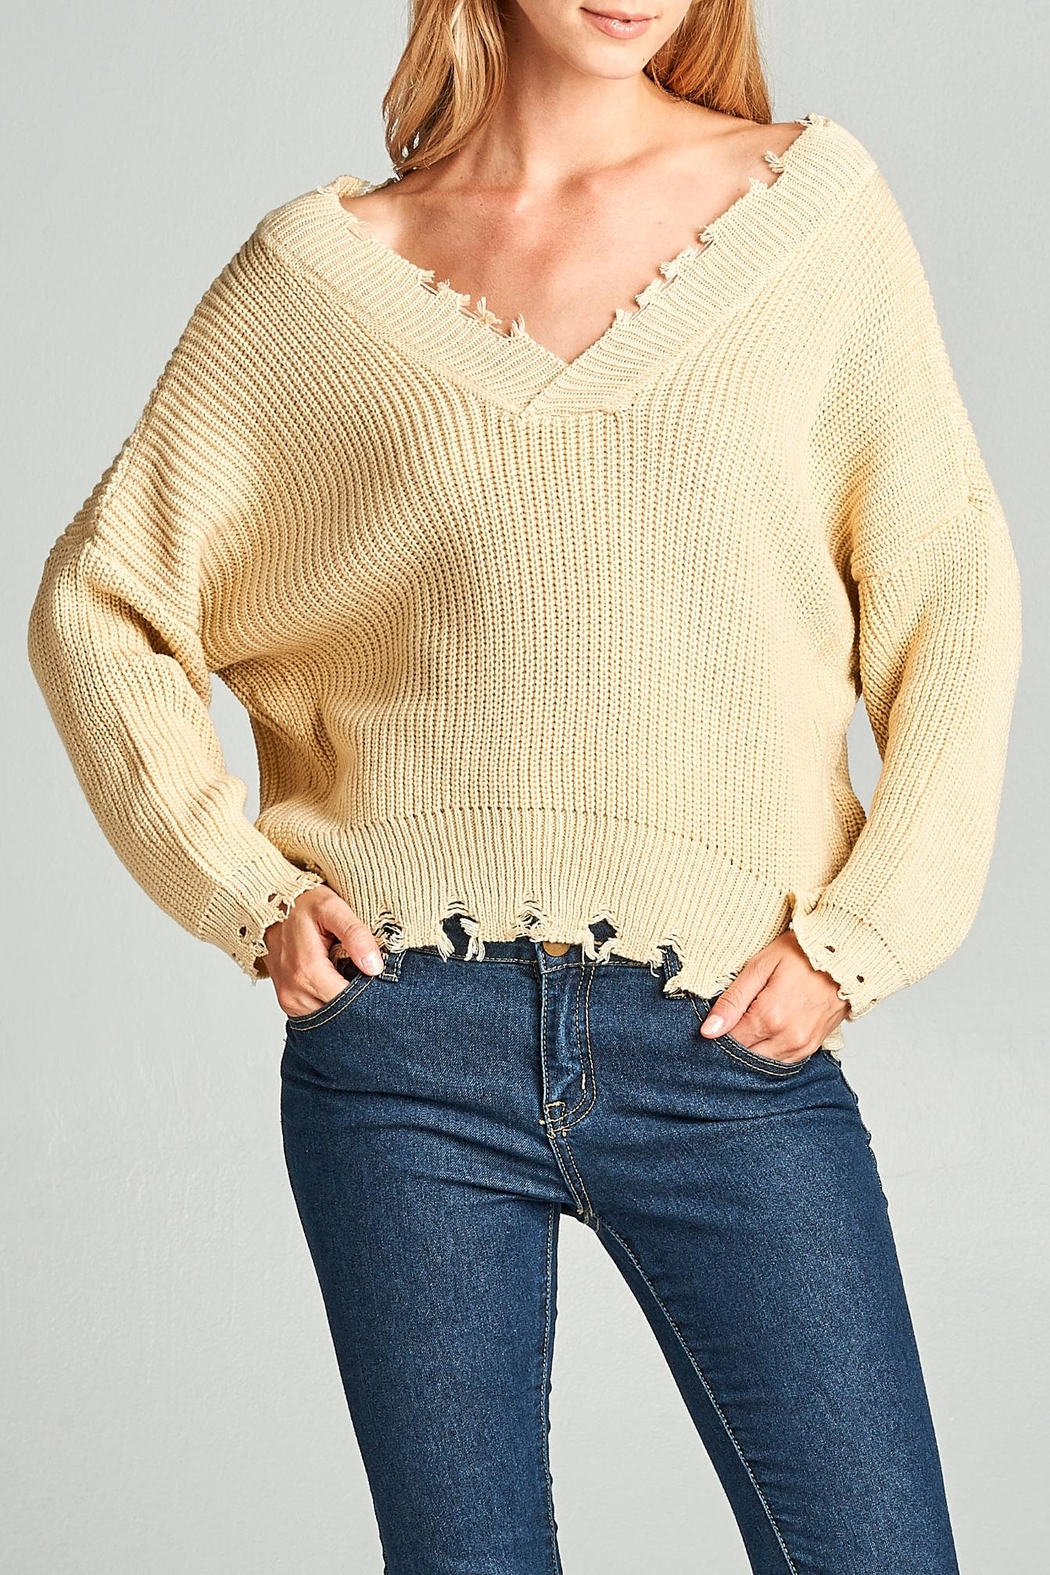 Racine Frayed Edge Sweater - Front Cropped Image